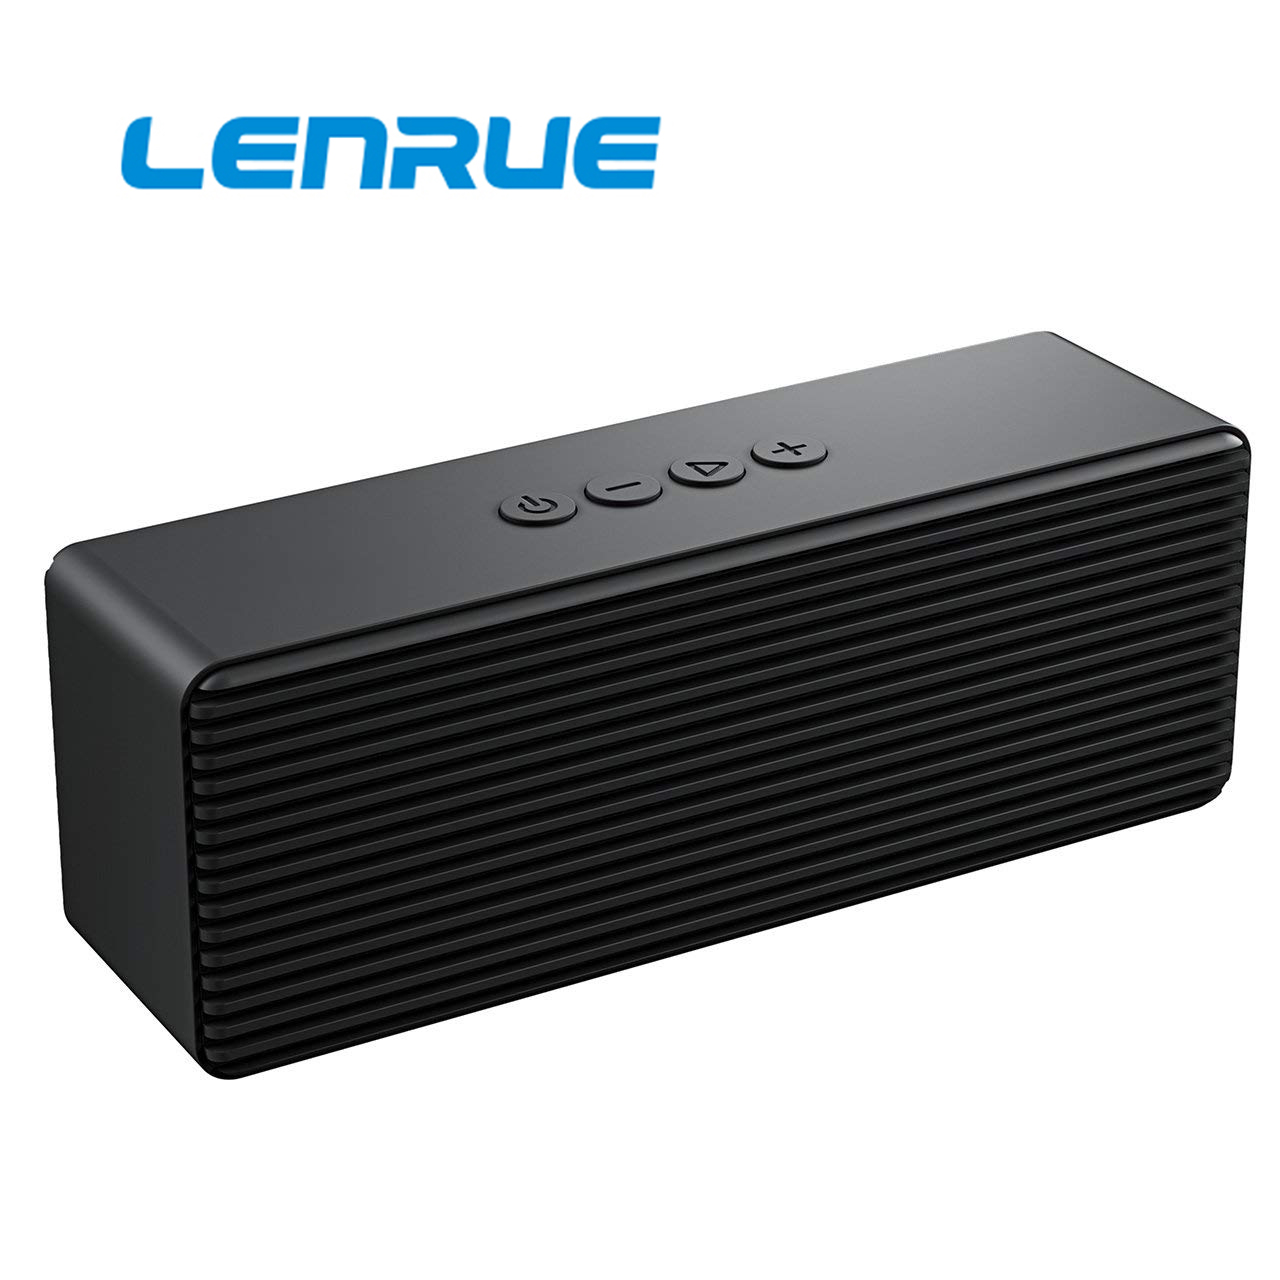 Black Bluetooth Speaker,Portable Wireless Speakers with HD Sound,Longer Playtime Built-in Mic for iPhone//Samsung//Andriod//PC//Laptop Ehco dot Support USB//TF Card//AUX